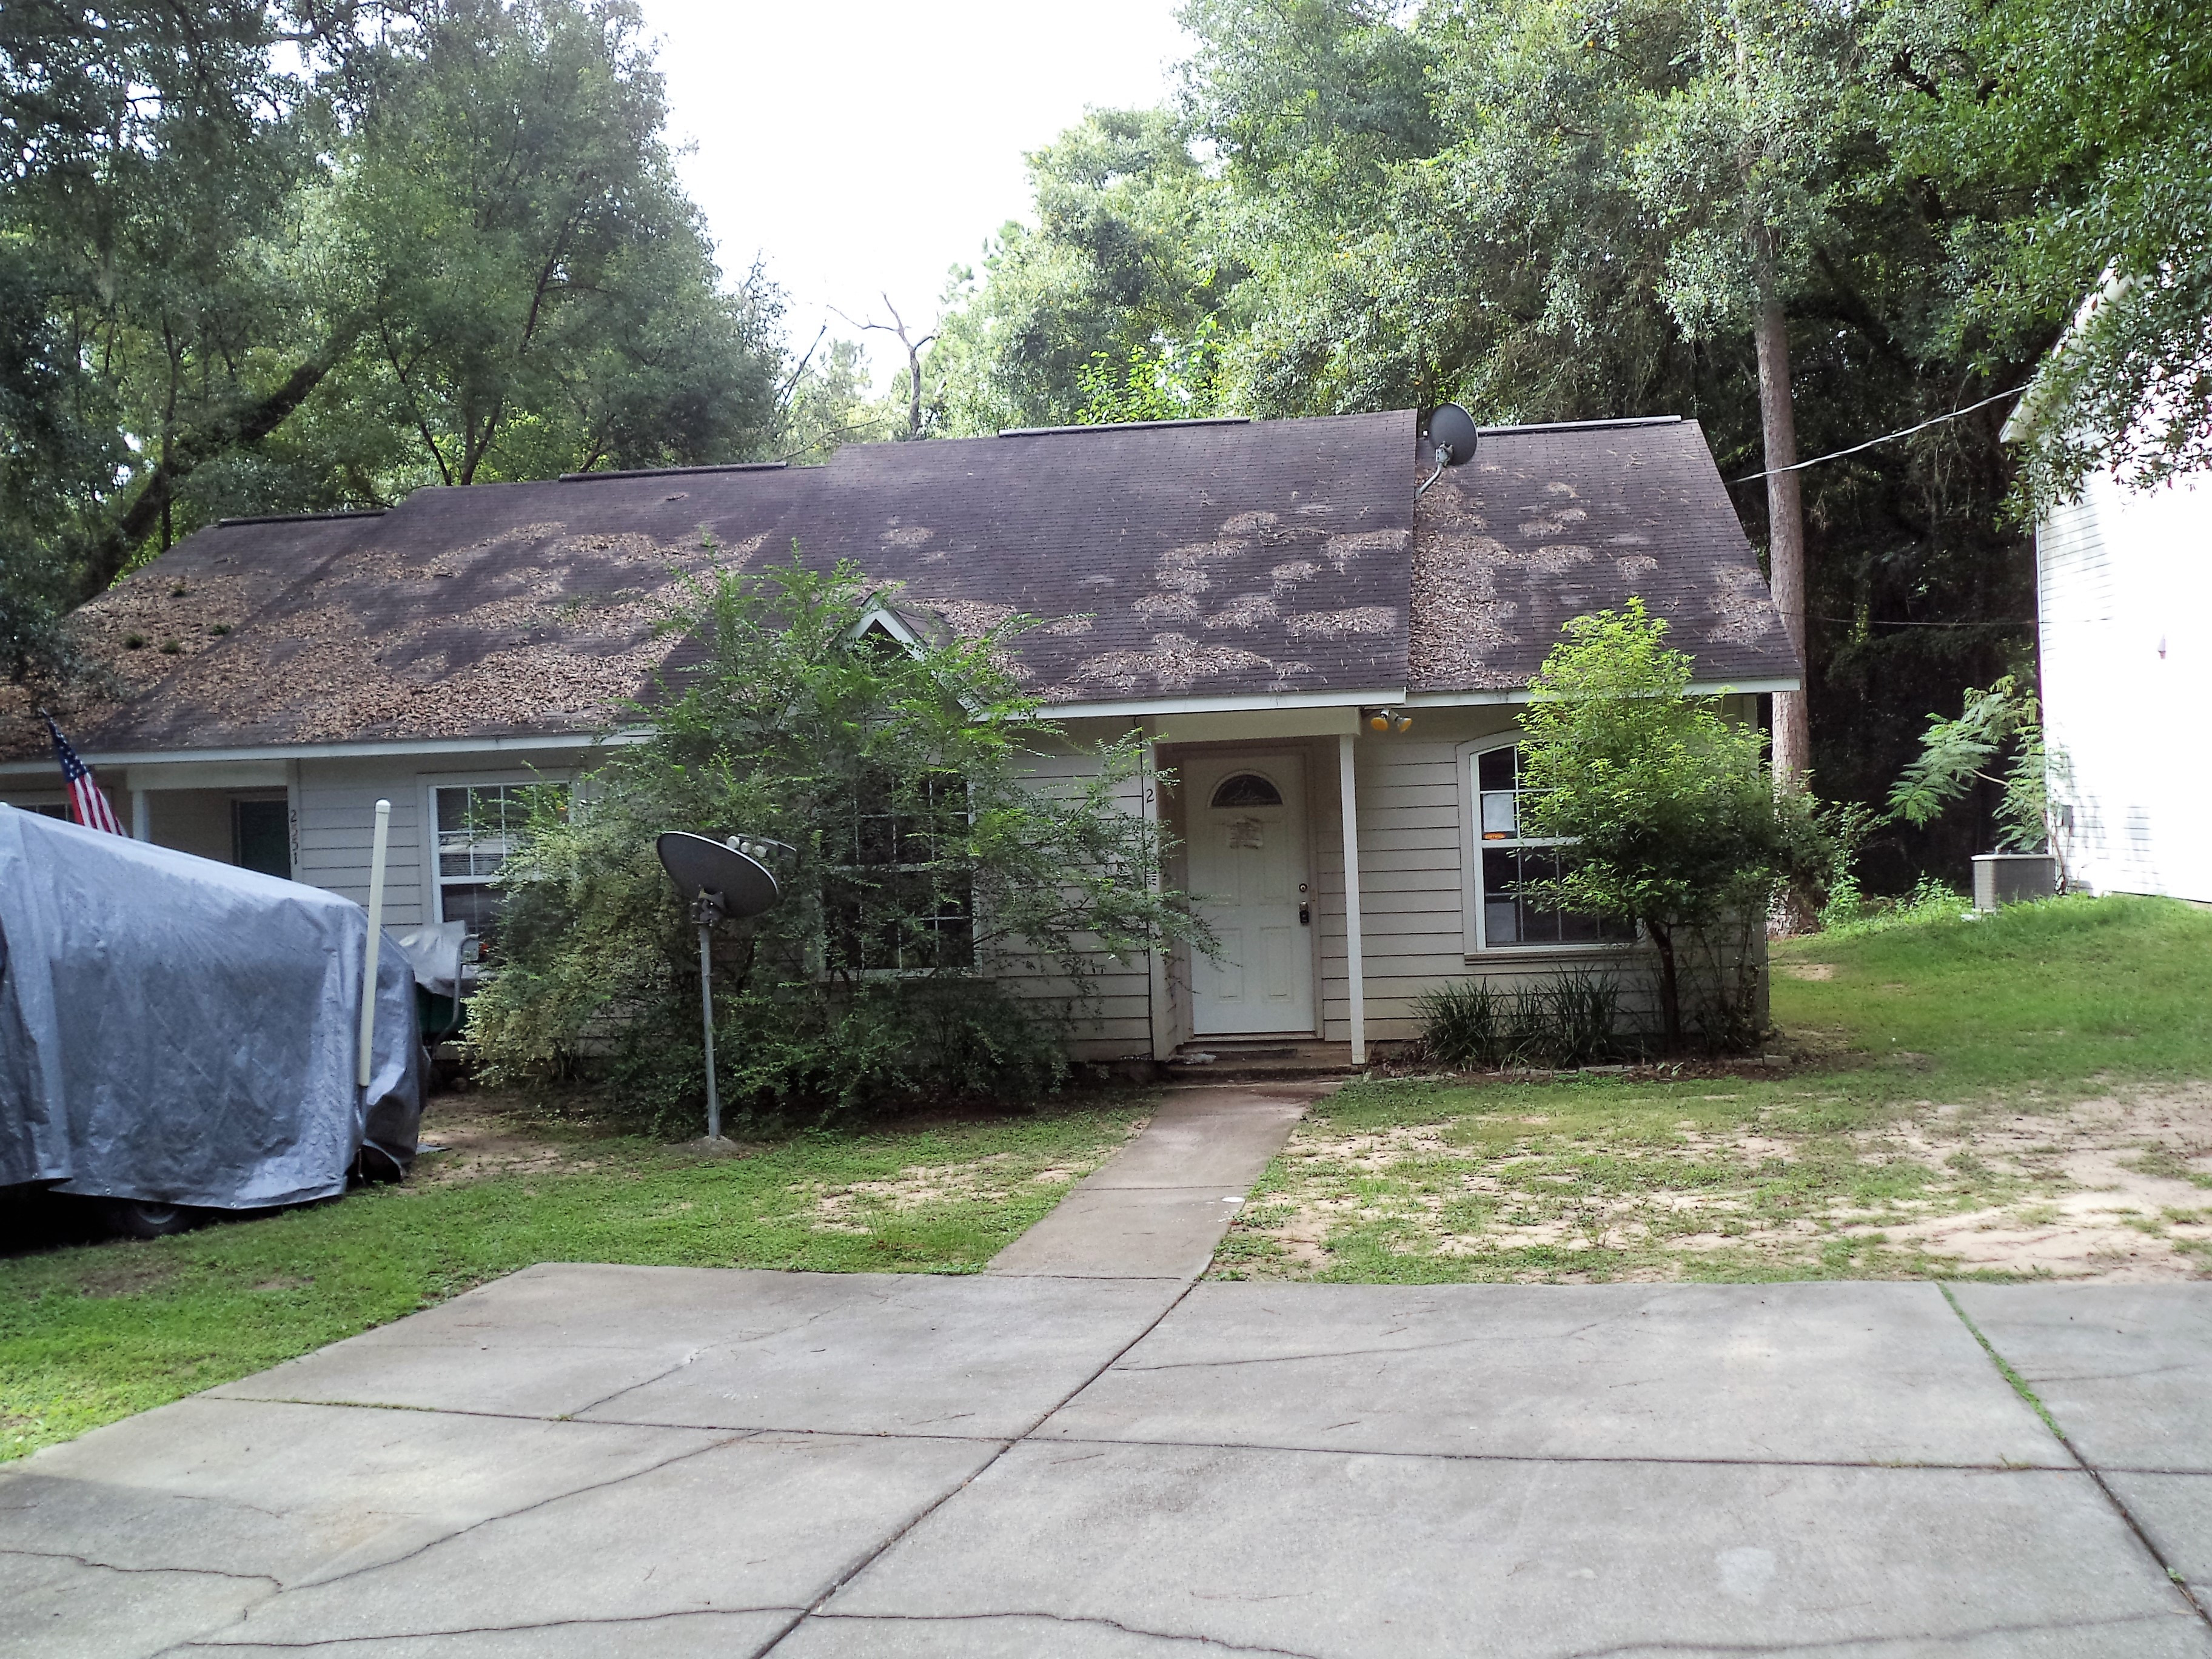 32310 foreclosures – 2555 Mcelroy St, Tallahassee, FL 32310